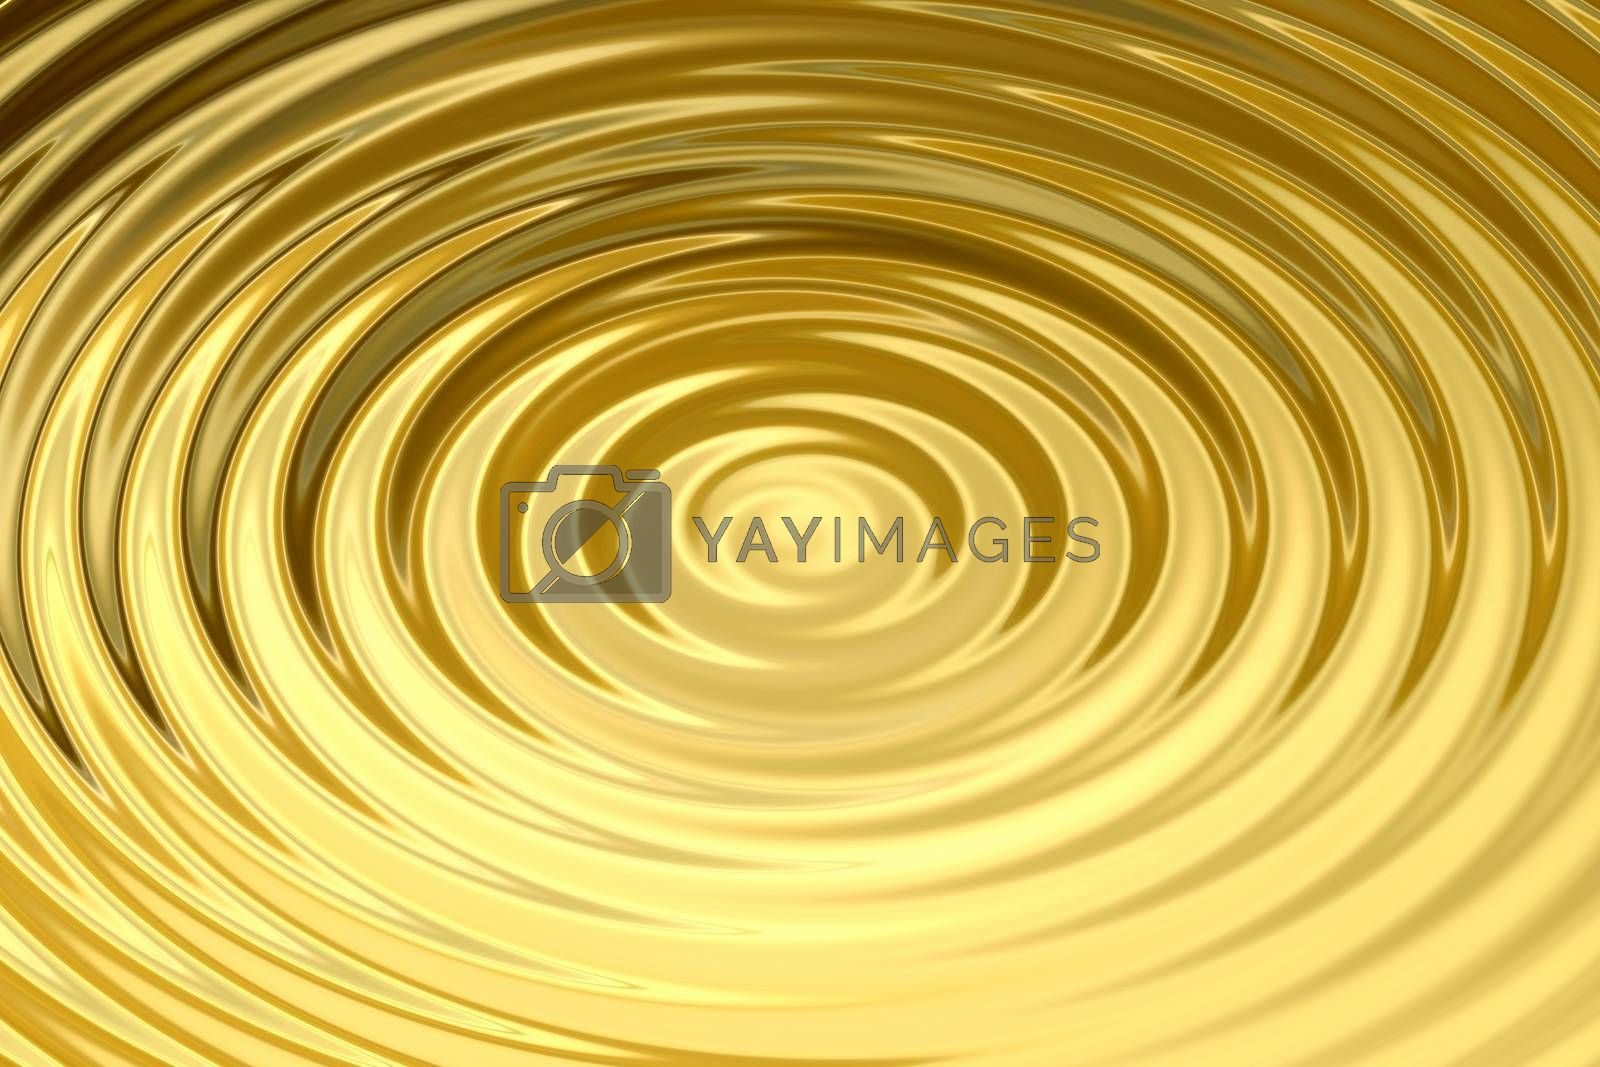 Royalty free image of Glowing gold water ring with liquid ripple, abstract background texture by mouu007